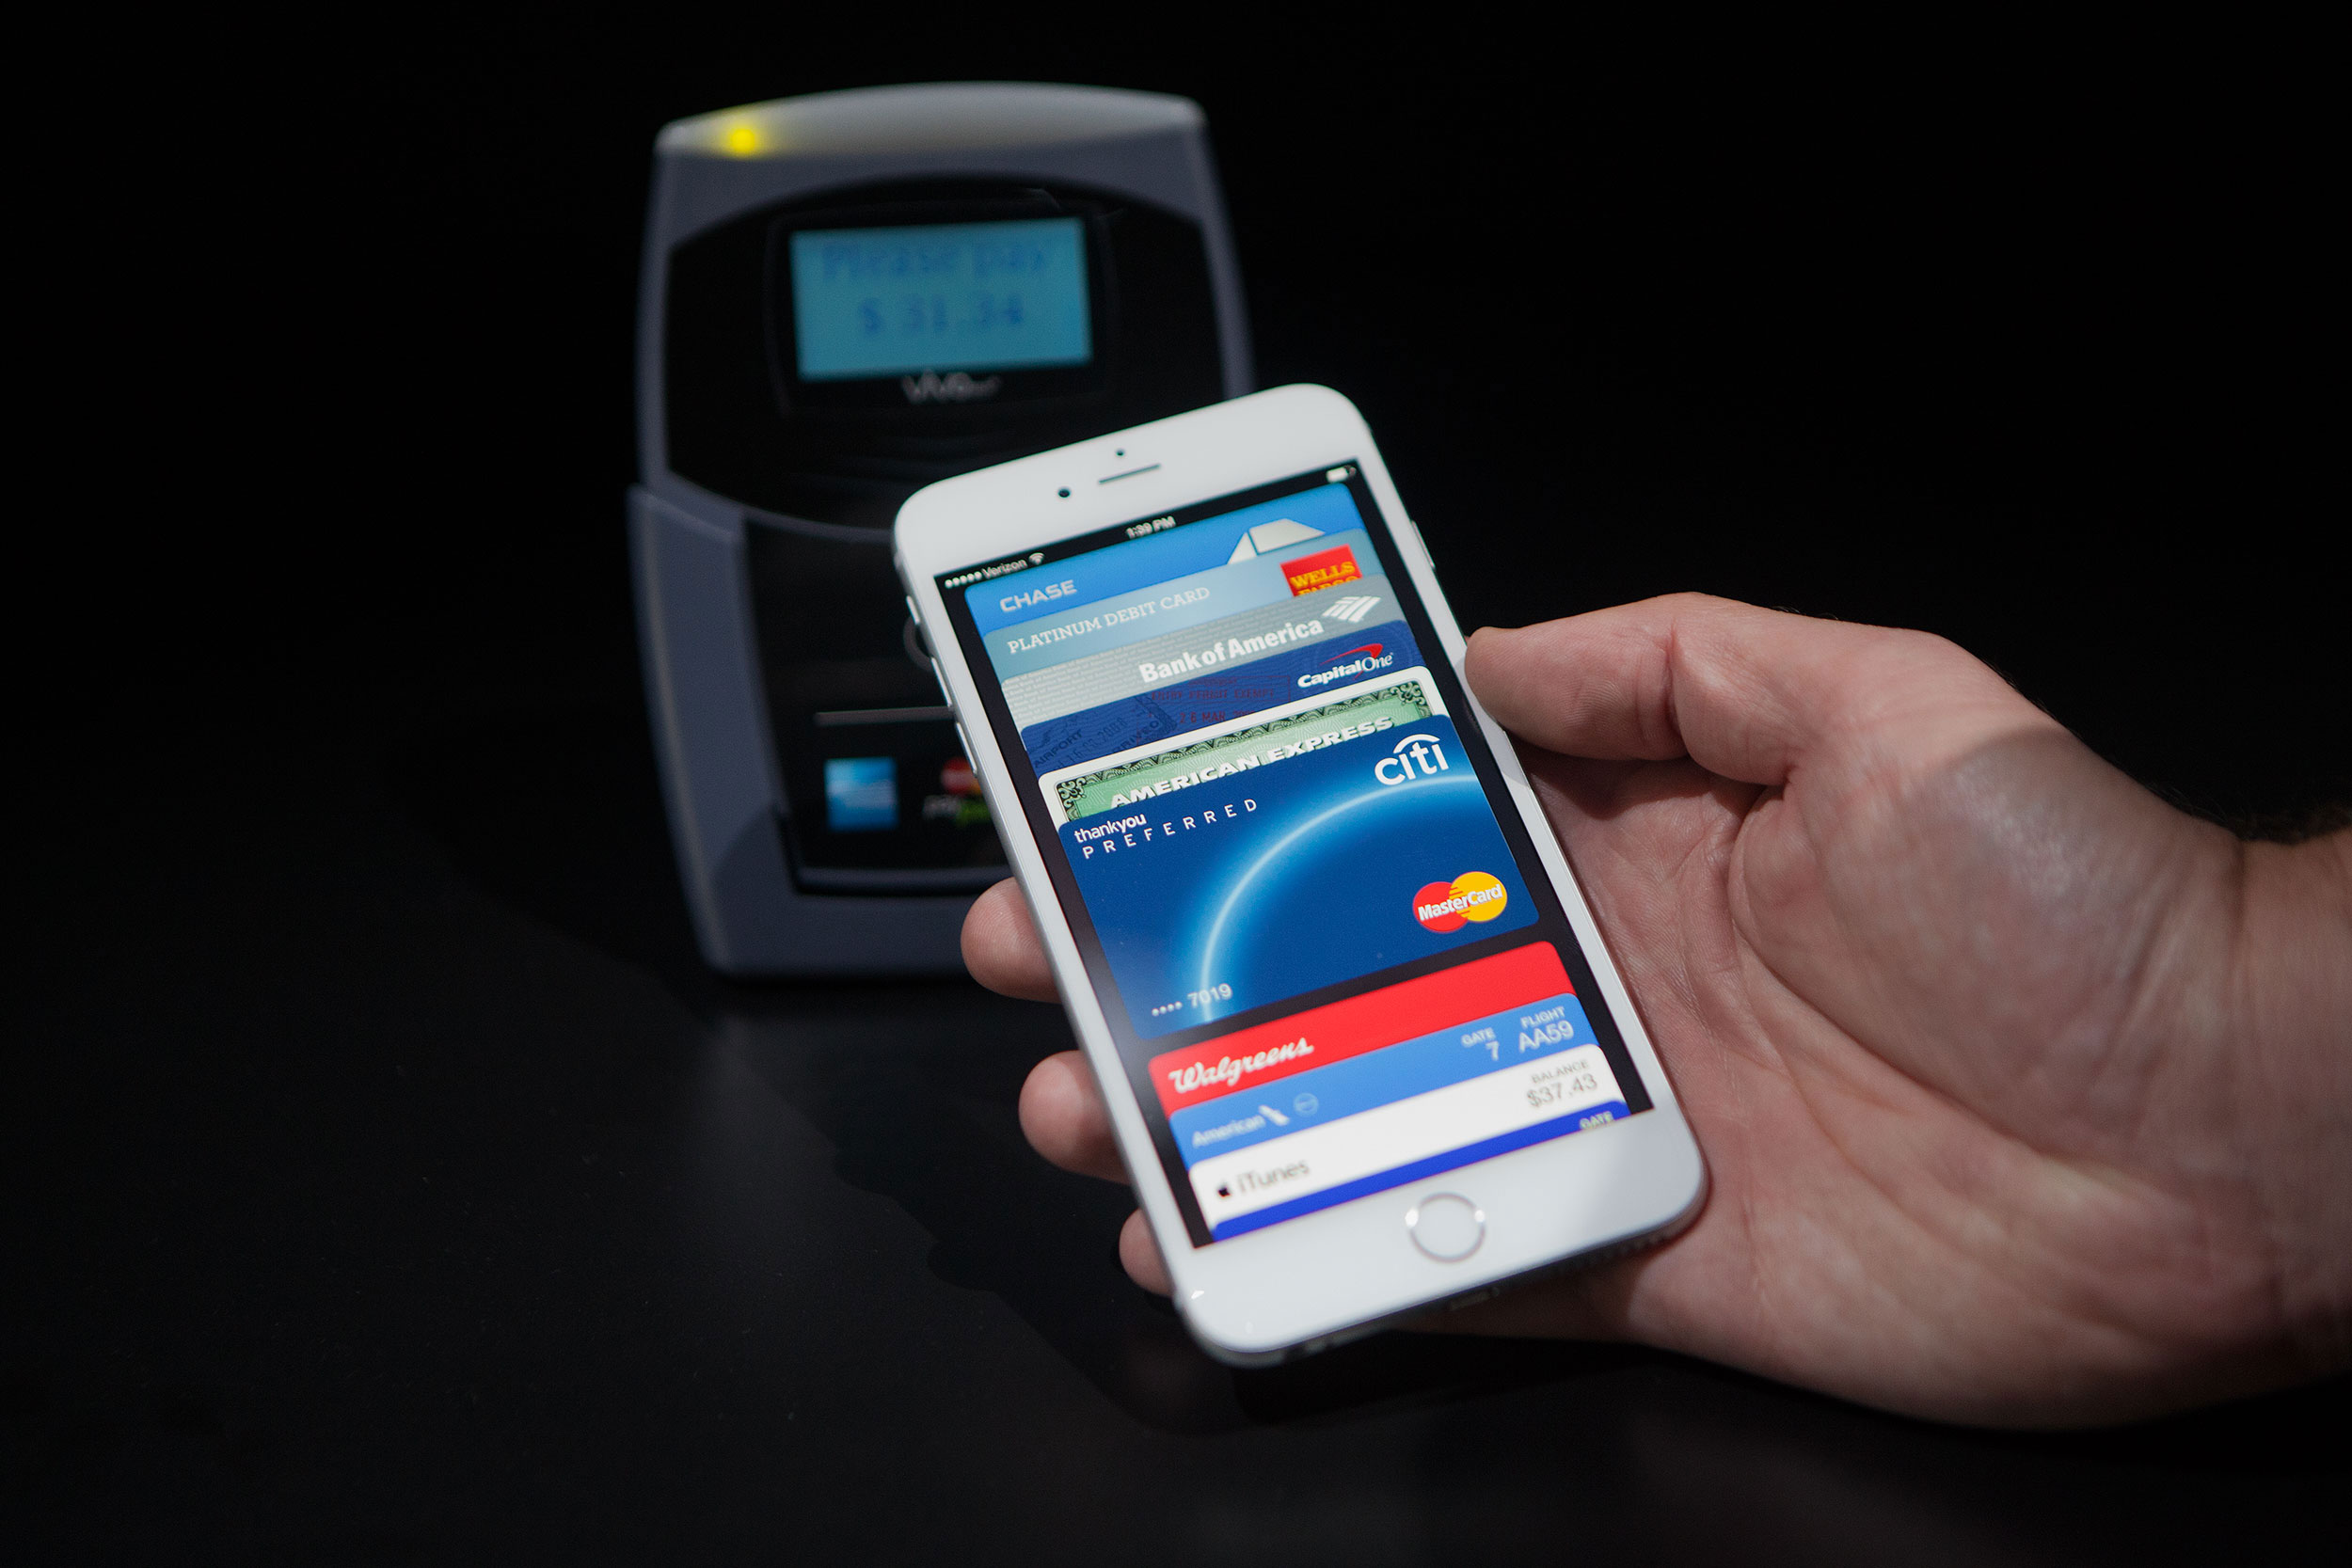 Apple's PayAnywhere partnership brings Apple Pay to 300,000 new locations